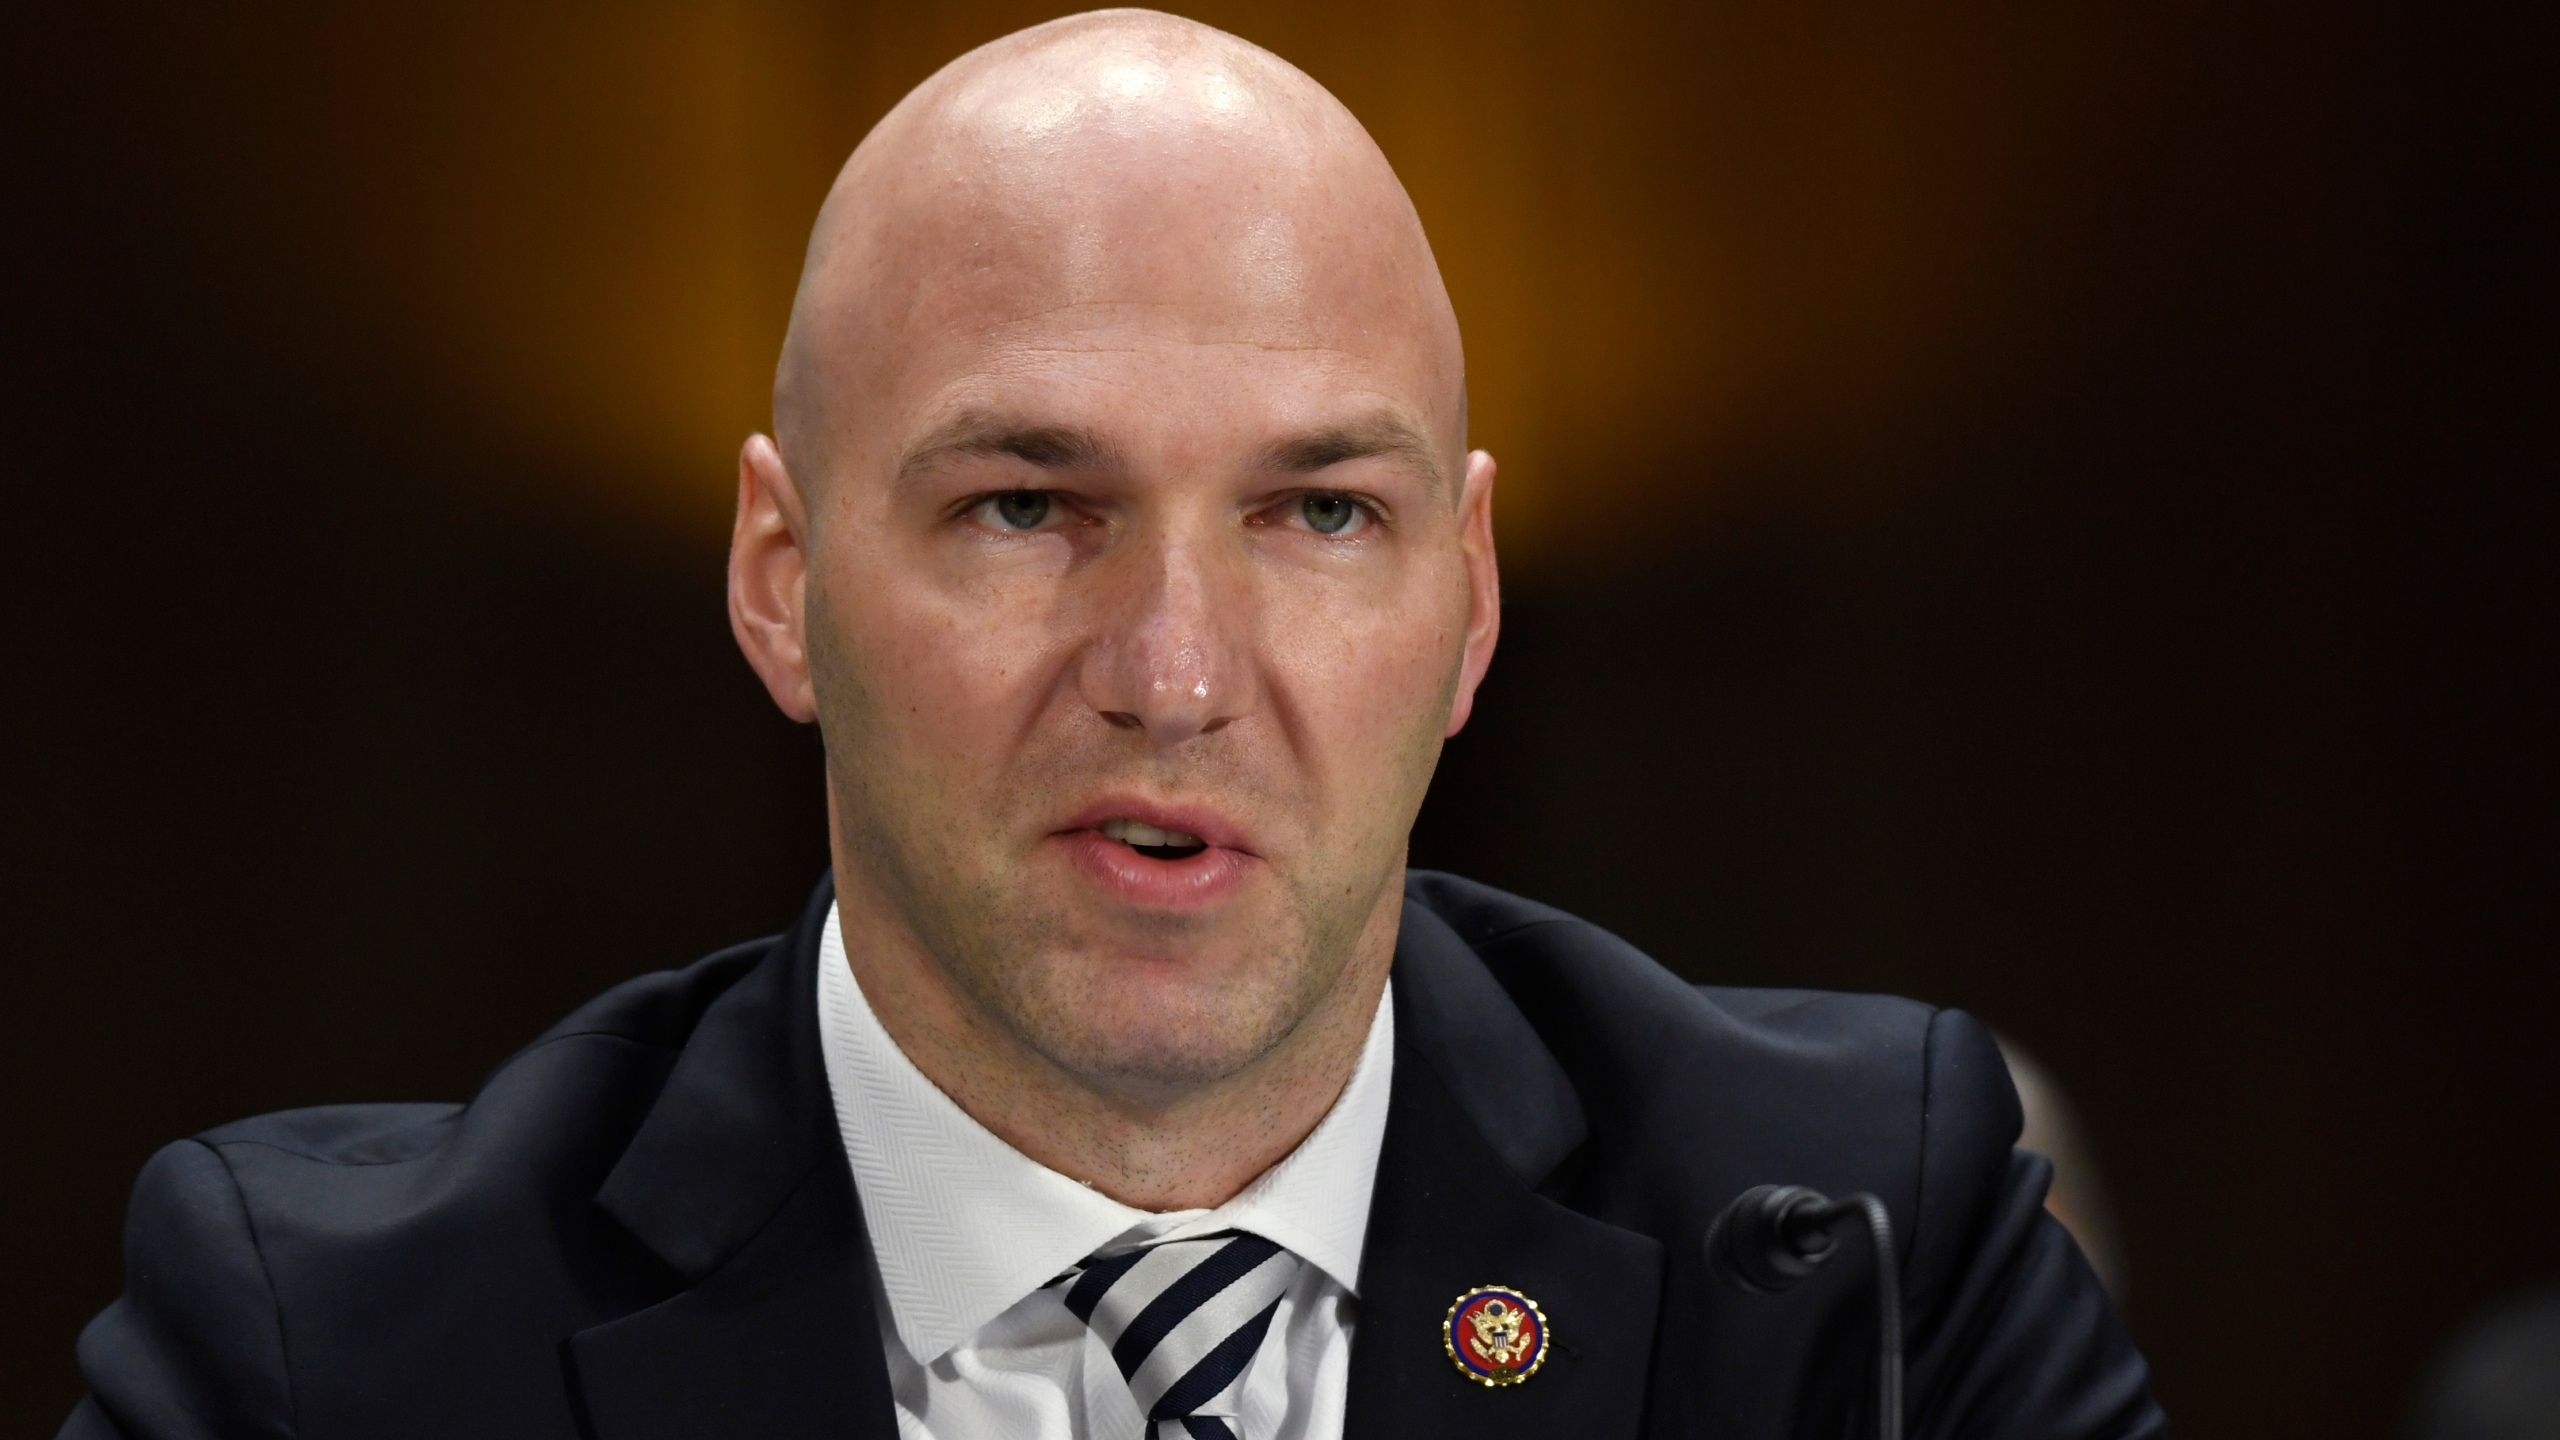 FILE - In this Feb. 11, 2020, file photo, Rep. Anthony Gonzalez, R-Ohio, speaks during a Senate Commerce subcommittee hearing on Capitol Hill in Washington, on intercollegiate athlete compensation. Gonzalez, the first of 10 House Republicans who voted to impeach former President Donald Trump for his role in inciting the Jan. 6 insurrection at the Capitol, announced Thursday, Sept. 16, 2021, he will not seek re-election next year. (AP Photo/Susan Walsh, File)